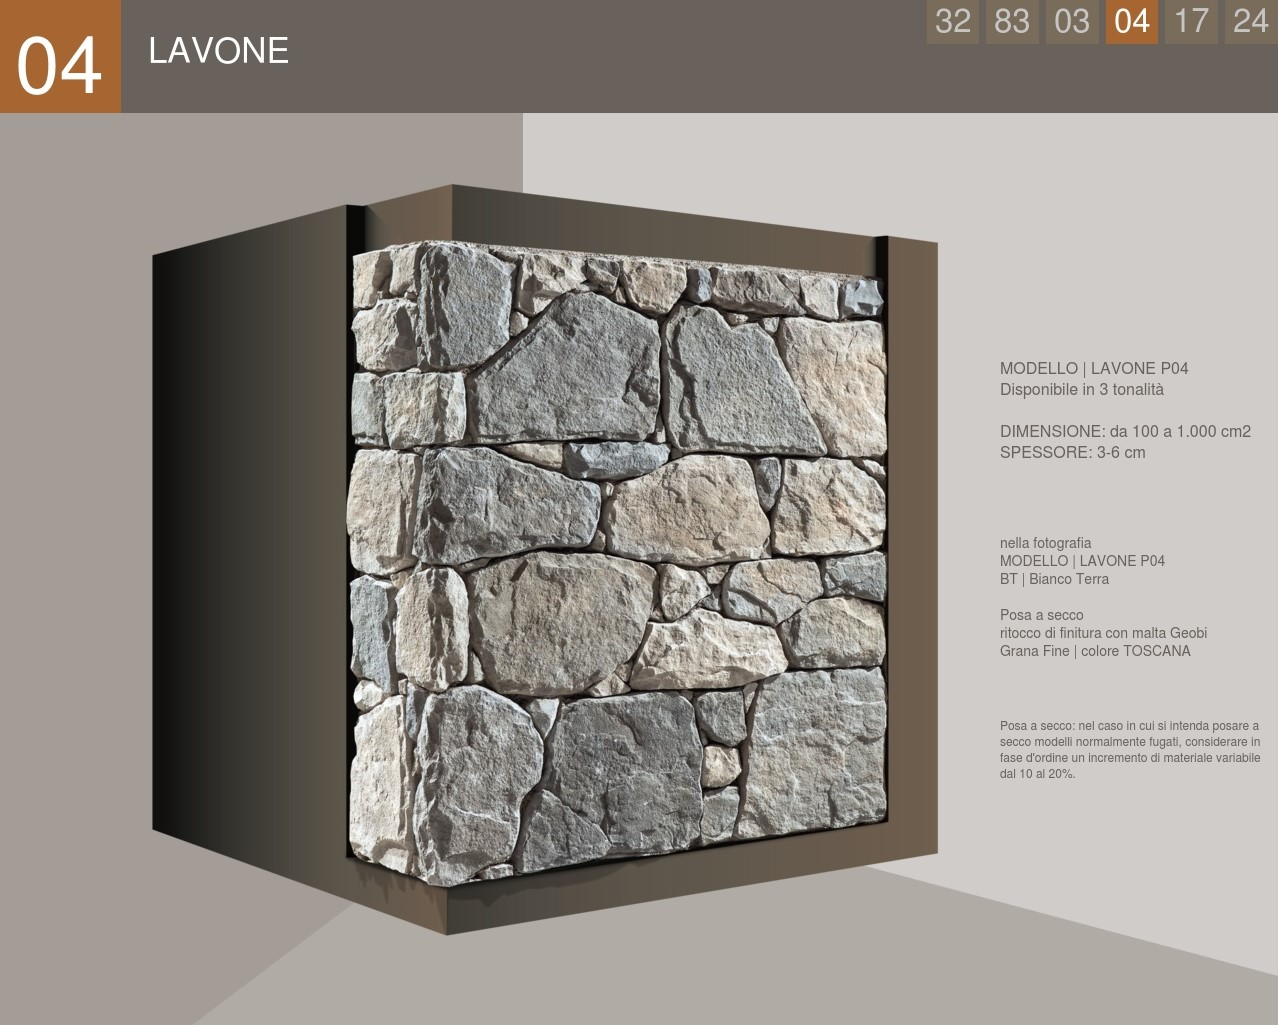 Stone cladding with an uncertain work profile, model Lavone